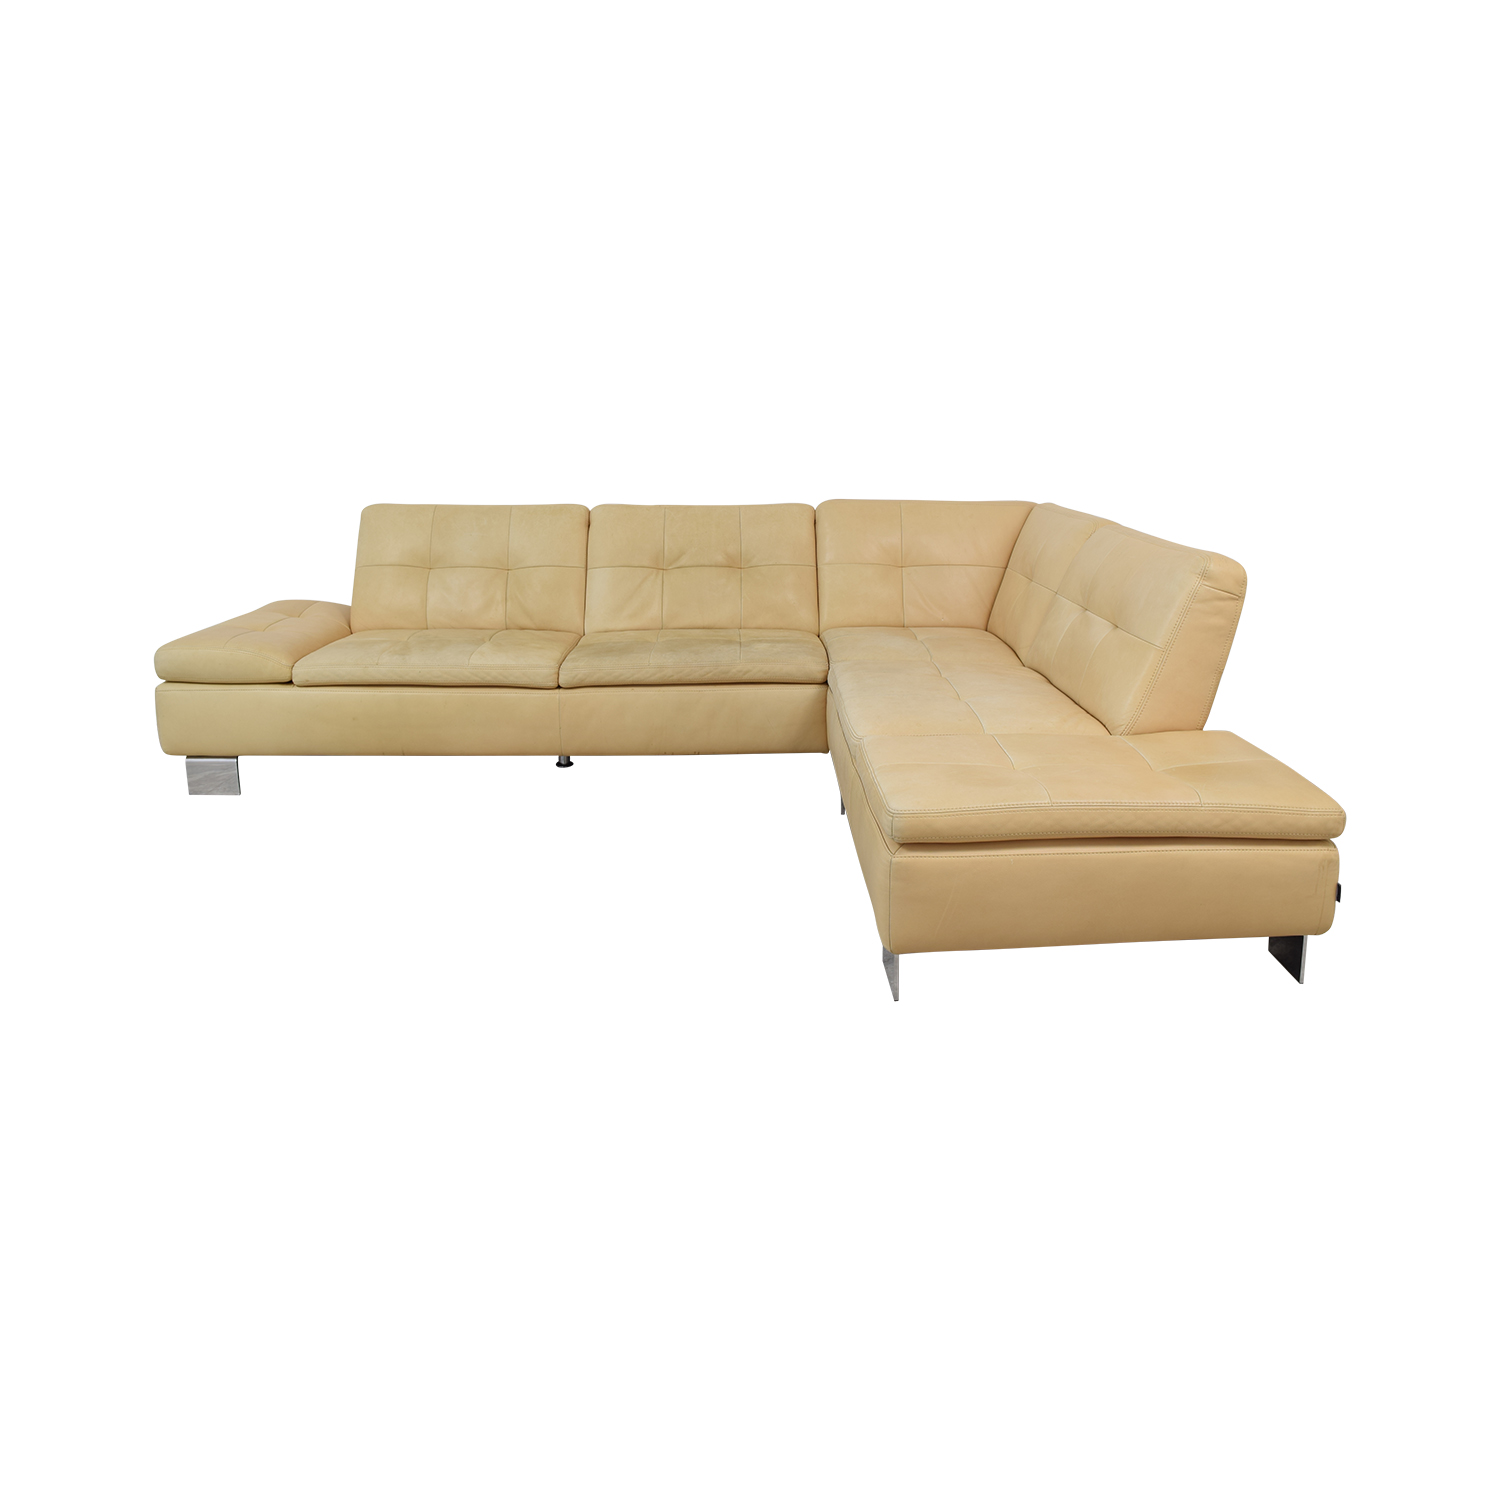 W. Schillig W. Schillig Beige Tufted Sofa L-Shaped Sectional dimensions